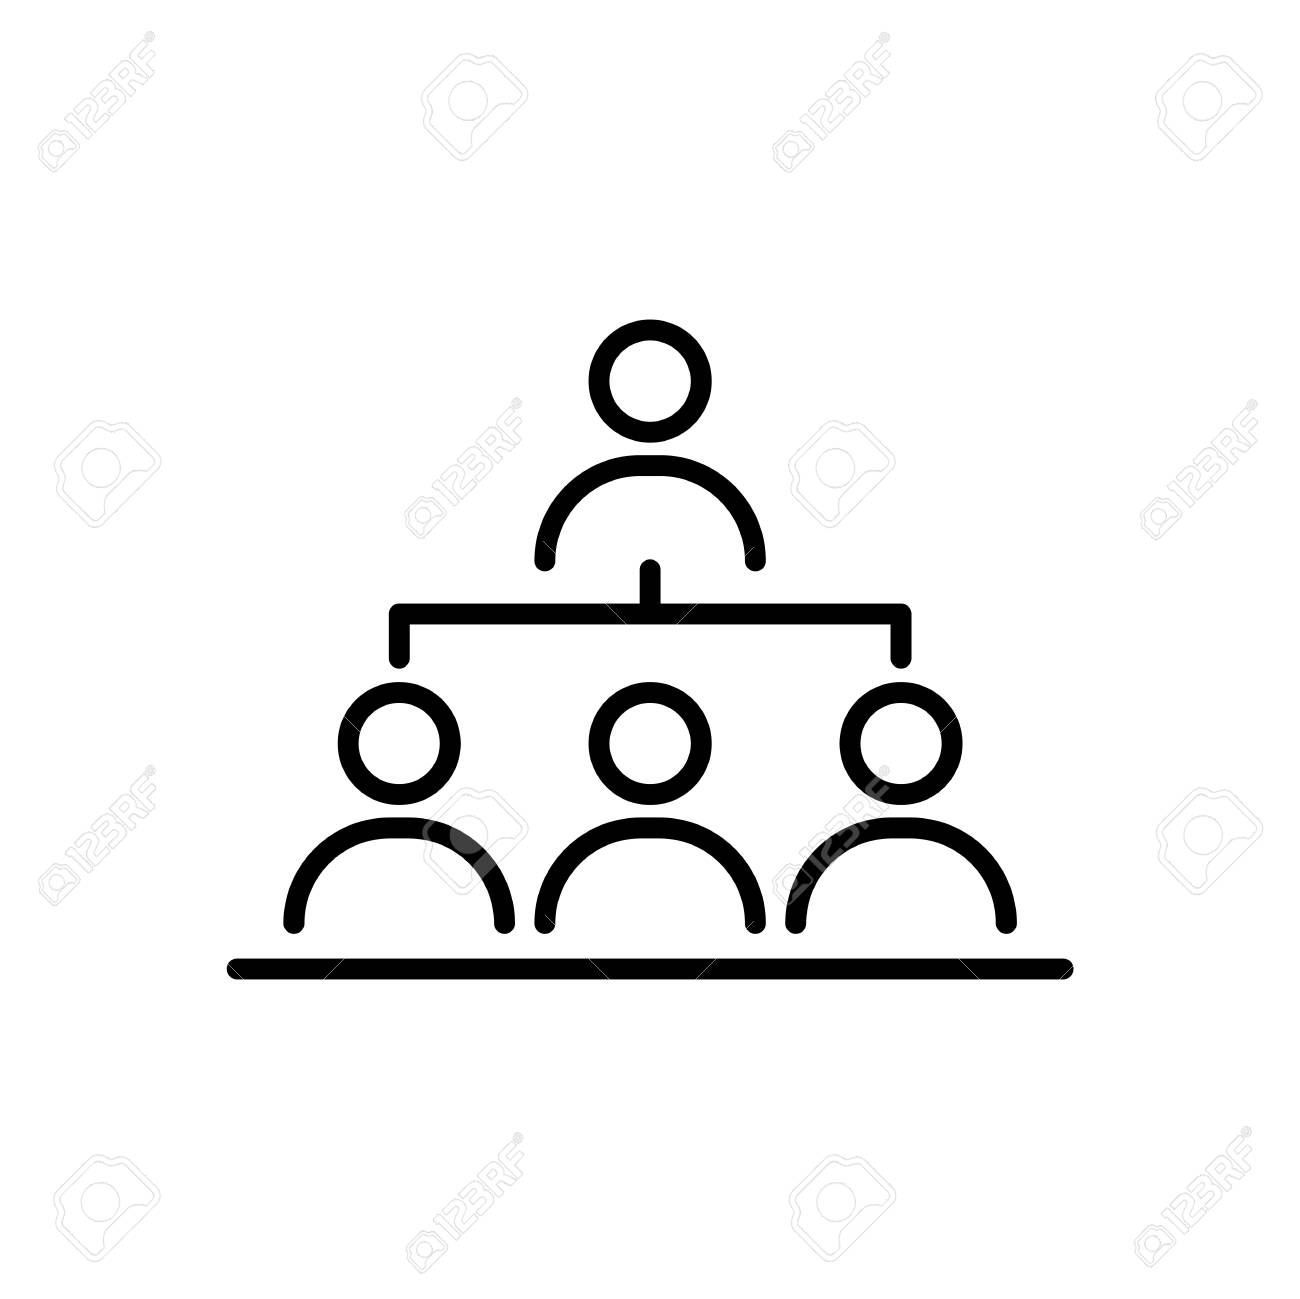 organization structure business people icon simple line flat royalty free cliparts vectors and stock illustration image 94294223 organization structure business people icon simple line flat